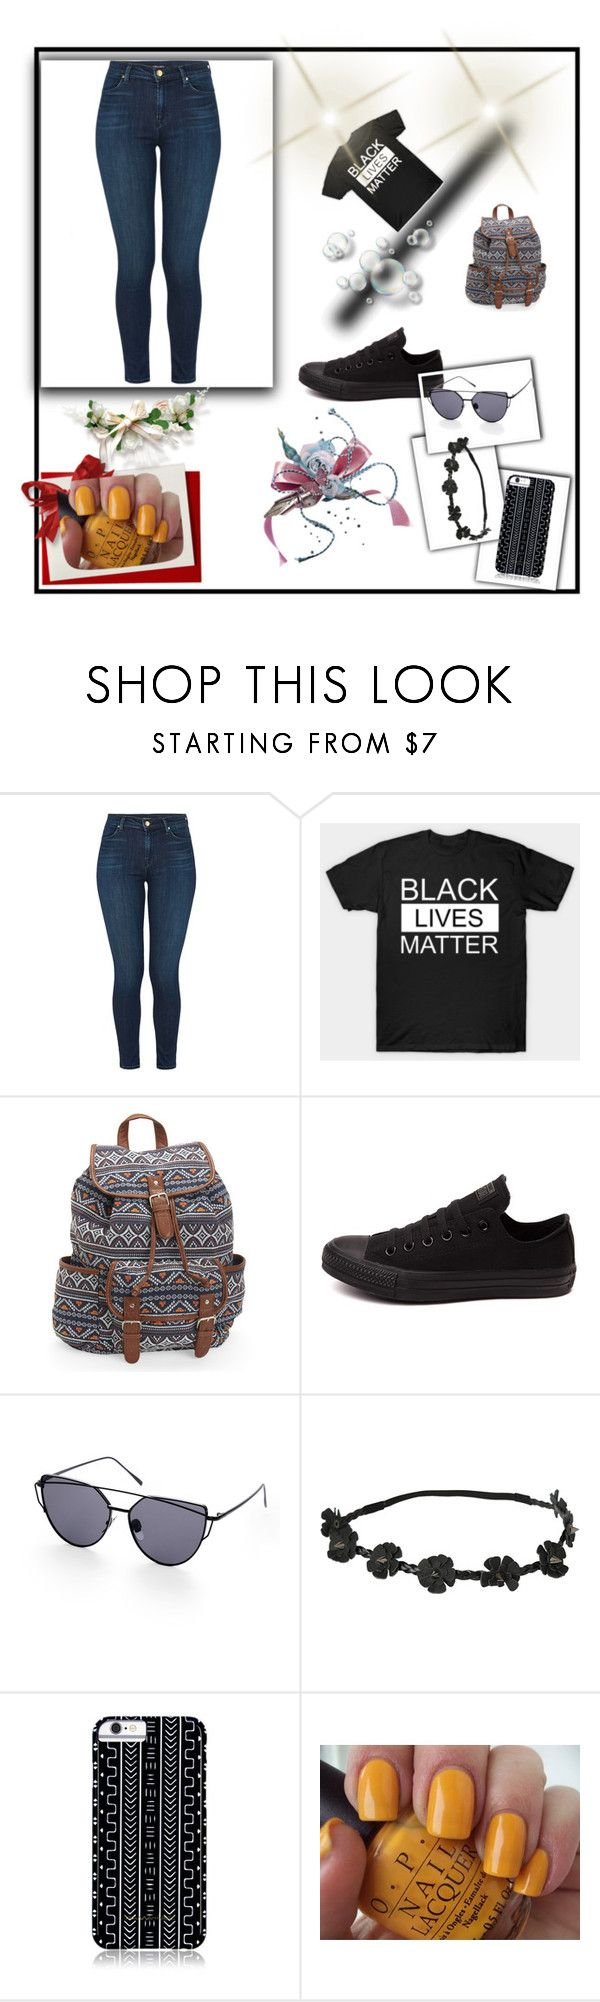 """Bez naslova #6"" by cikorija-intubus ❤ liked on Polyvore featuring J Brand, Aéropostale, Converse, Hot Topic, Savannah Hayes and OPI"